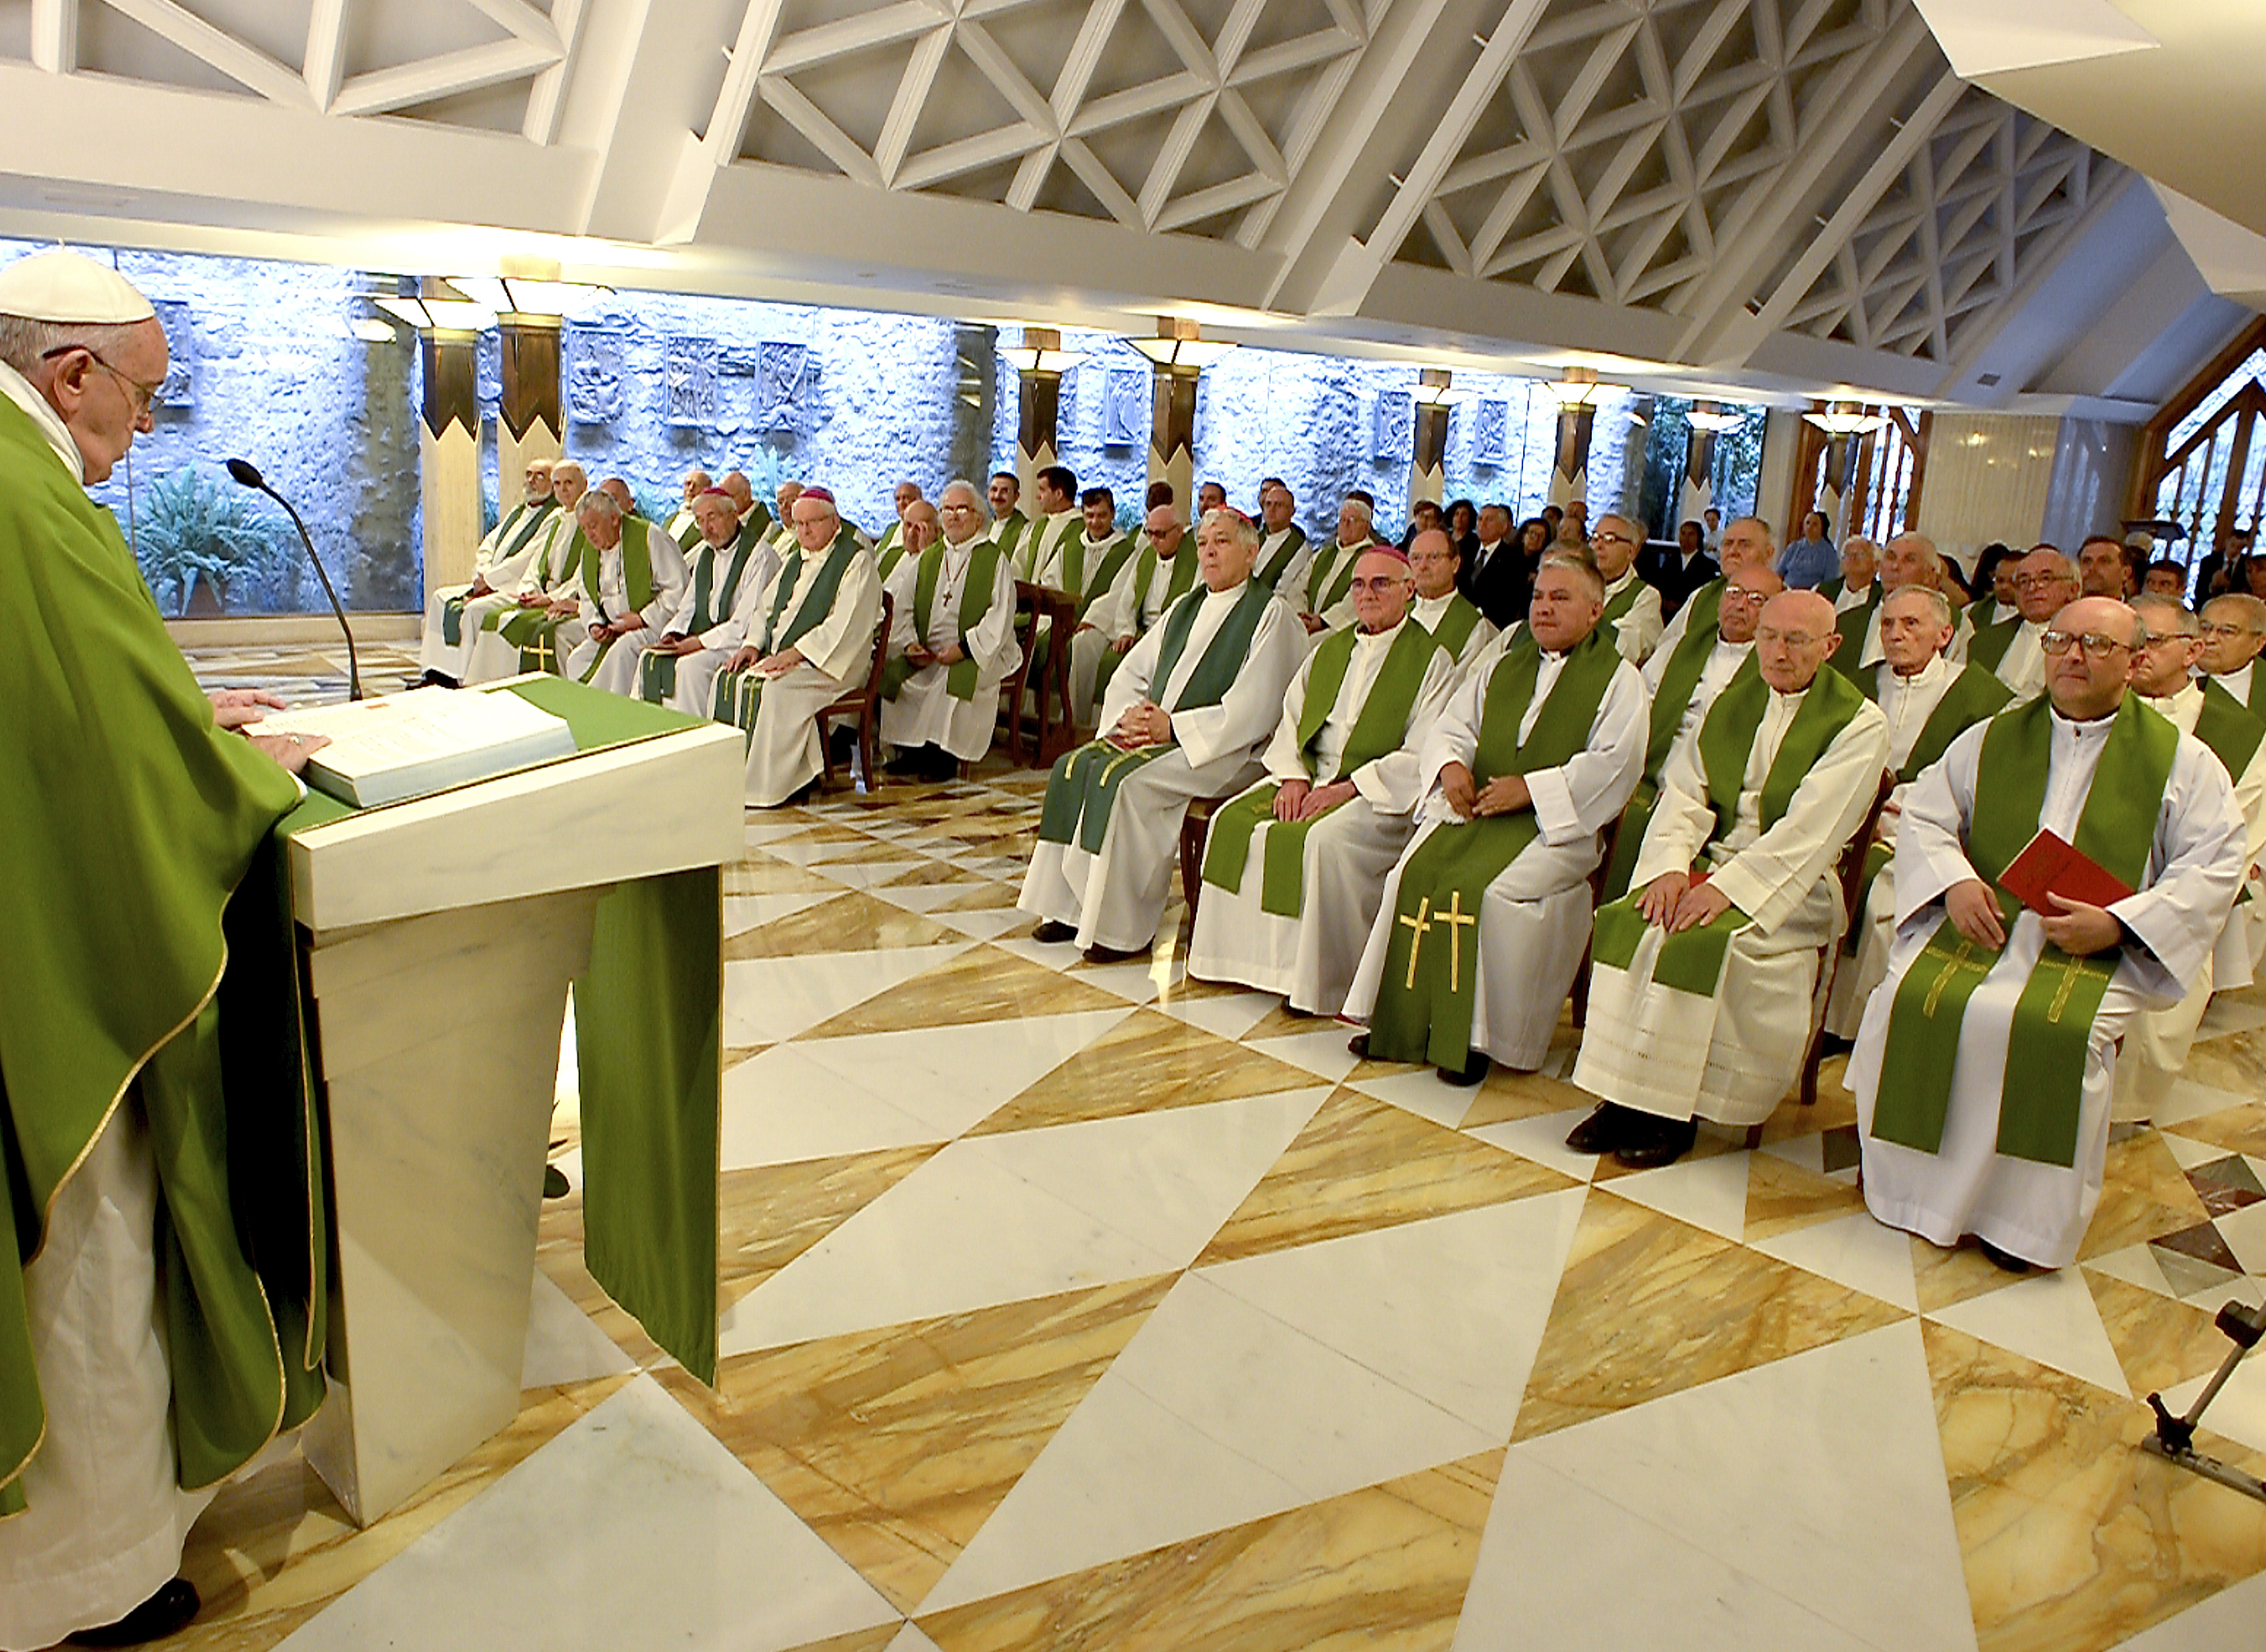 Pope Francis in Santa Marta during the homily. 2015 June 25